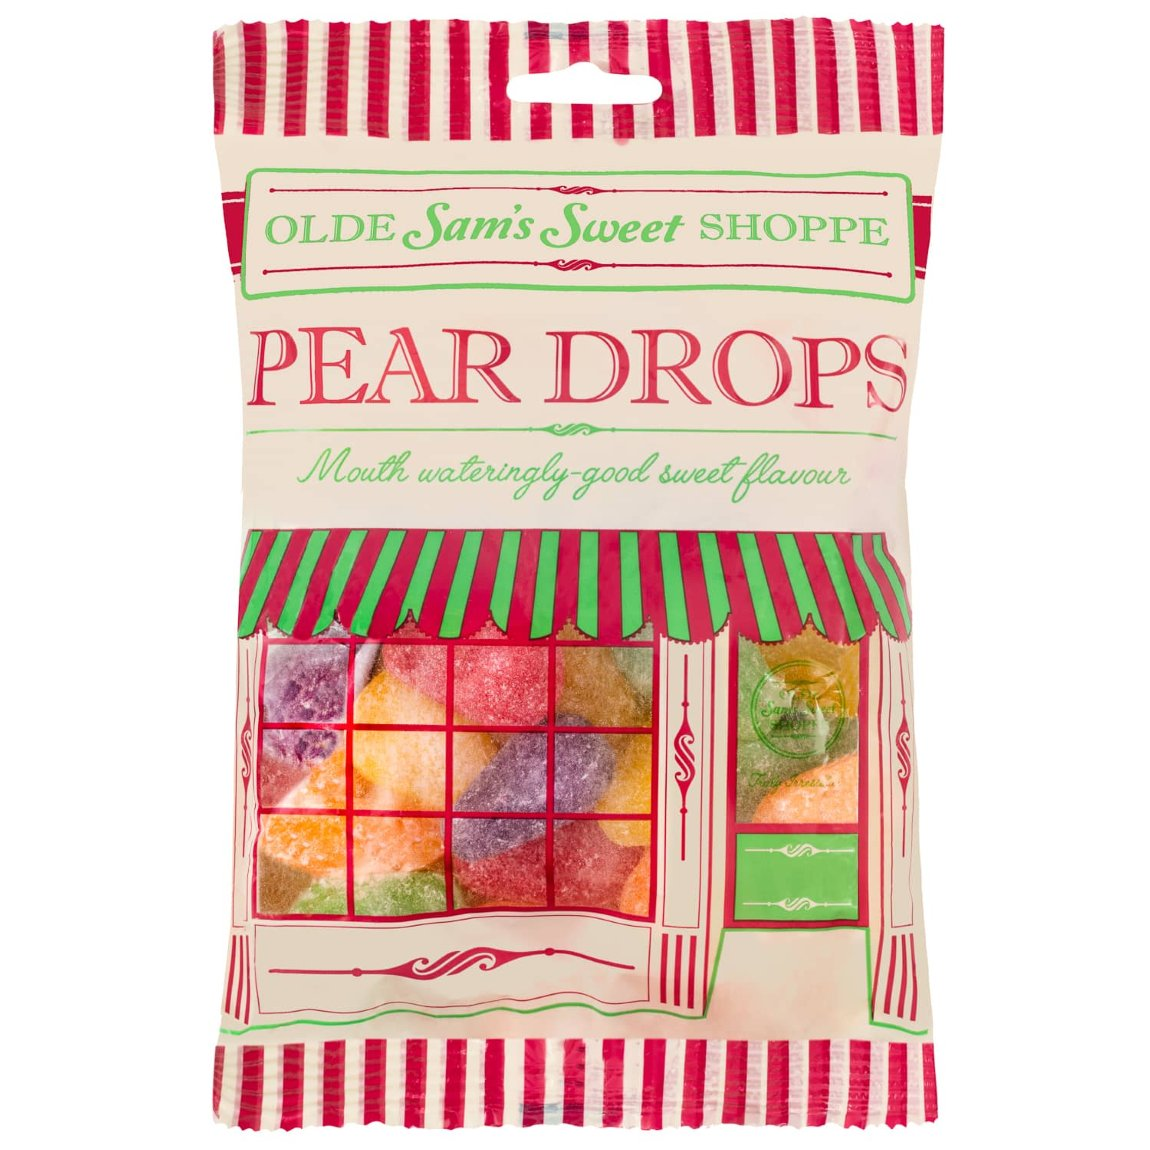 Olde Sam's Pear Drops 310g